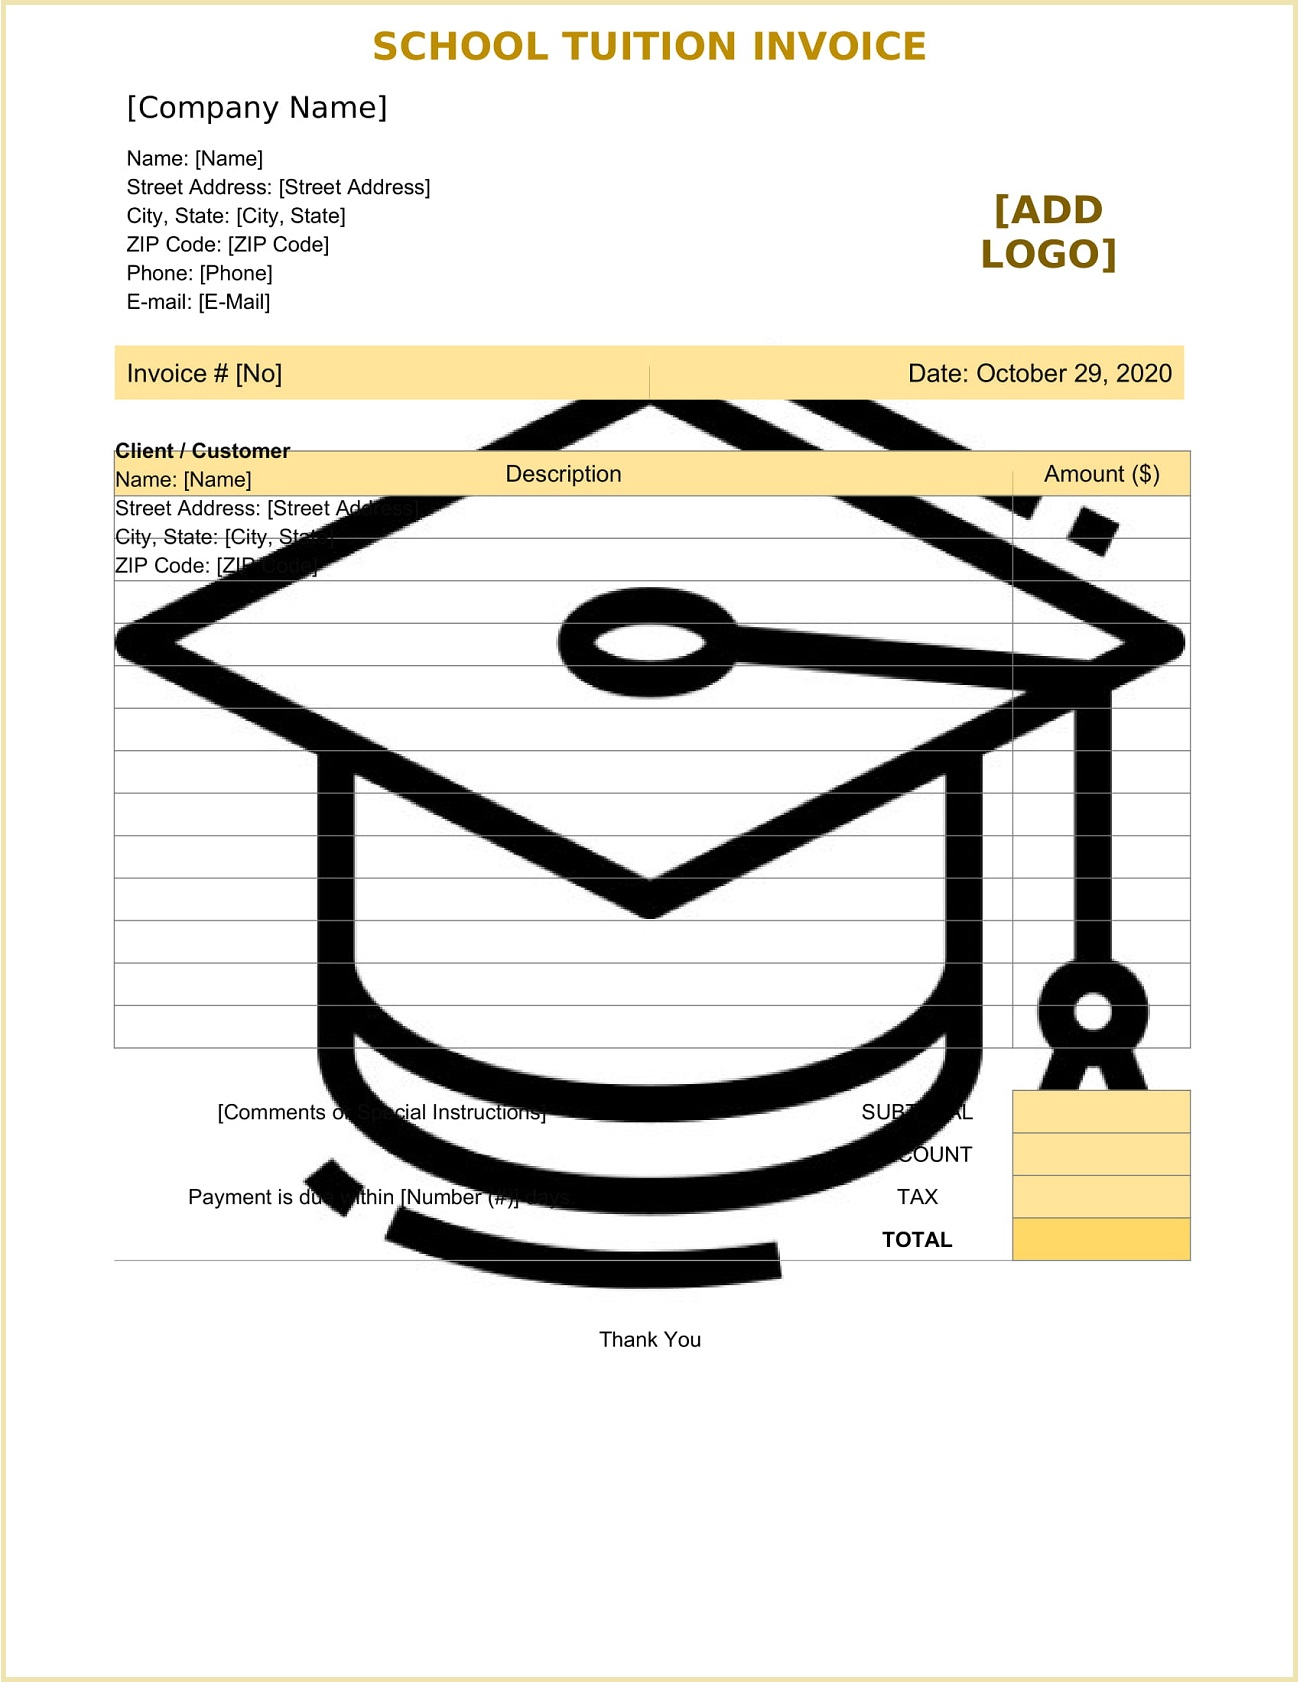 School Tuition Invoice Form Template Word